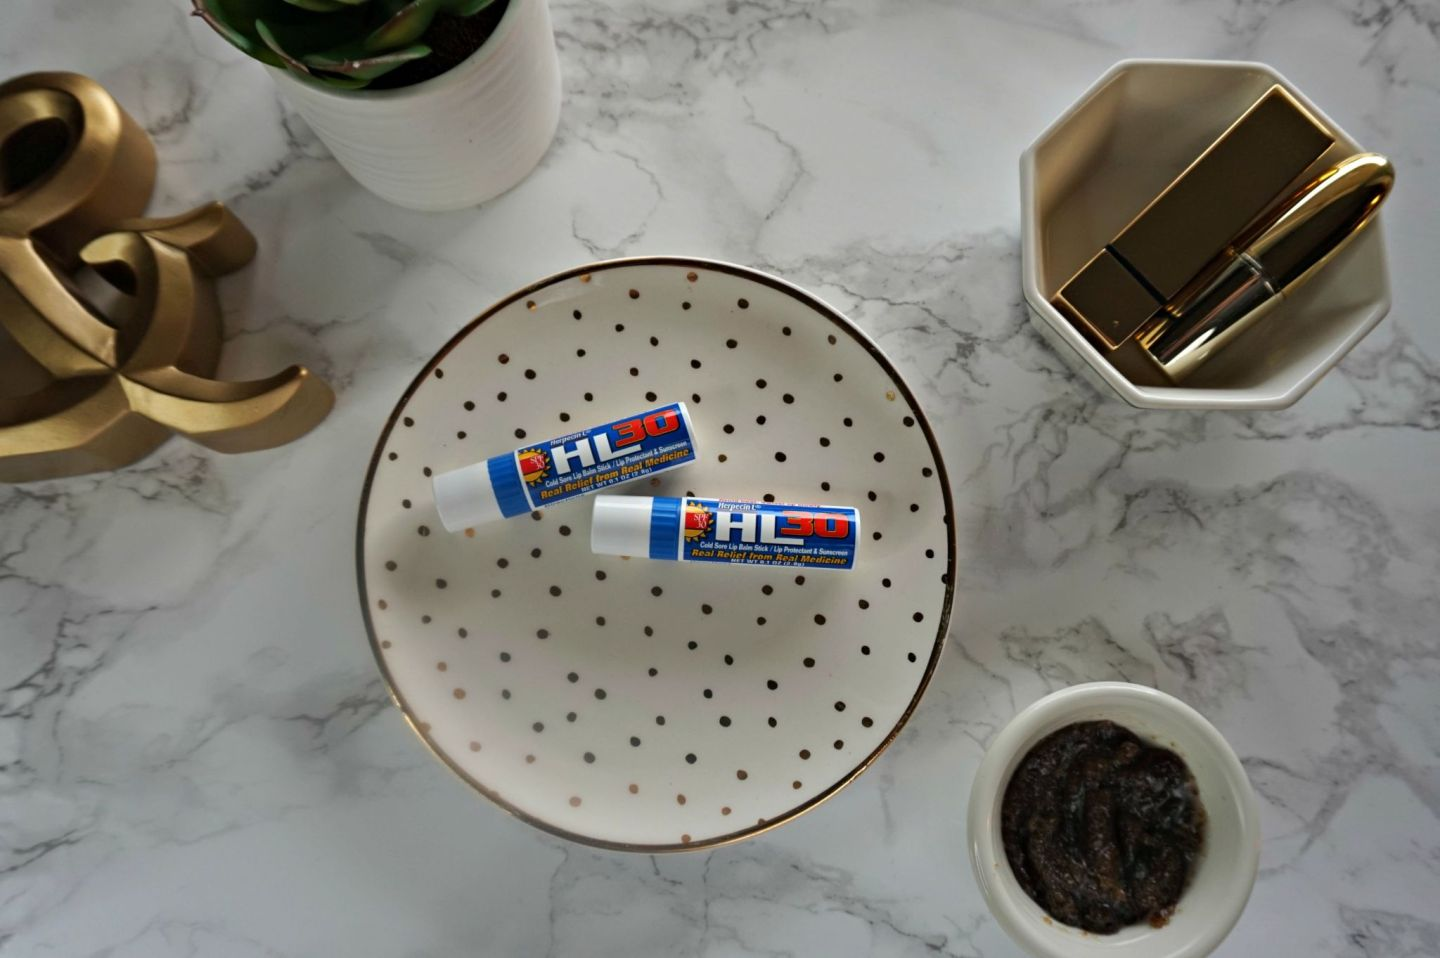 Chapped Lips Remedy With Herpecin + DIY Lip Scrub // Beauty With Lily #ad #Herpecin #PowerPrimer #BeautyJewel http://primp.in/LV19CLcP4p